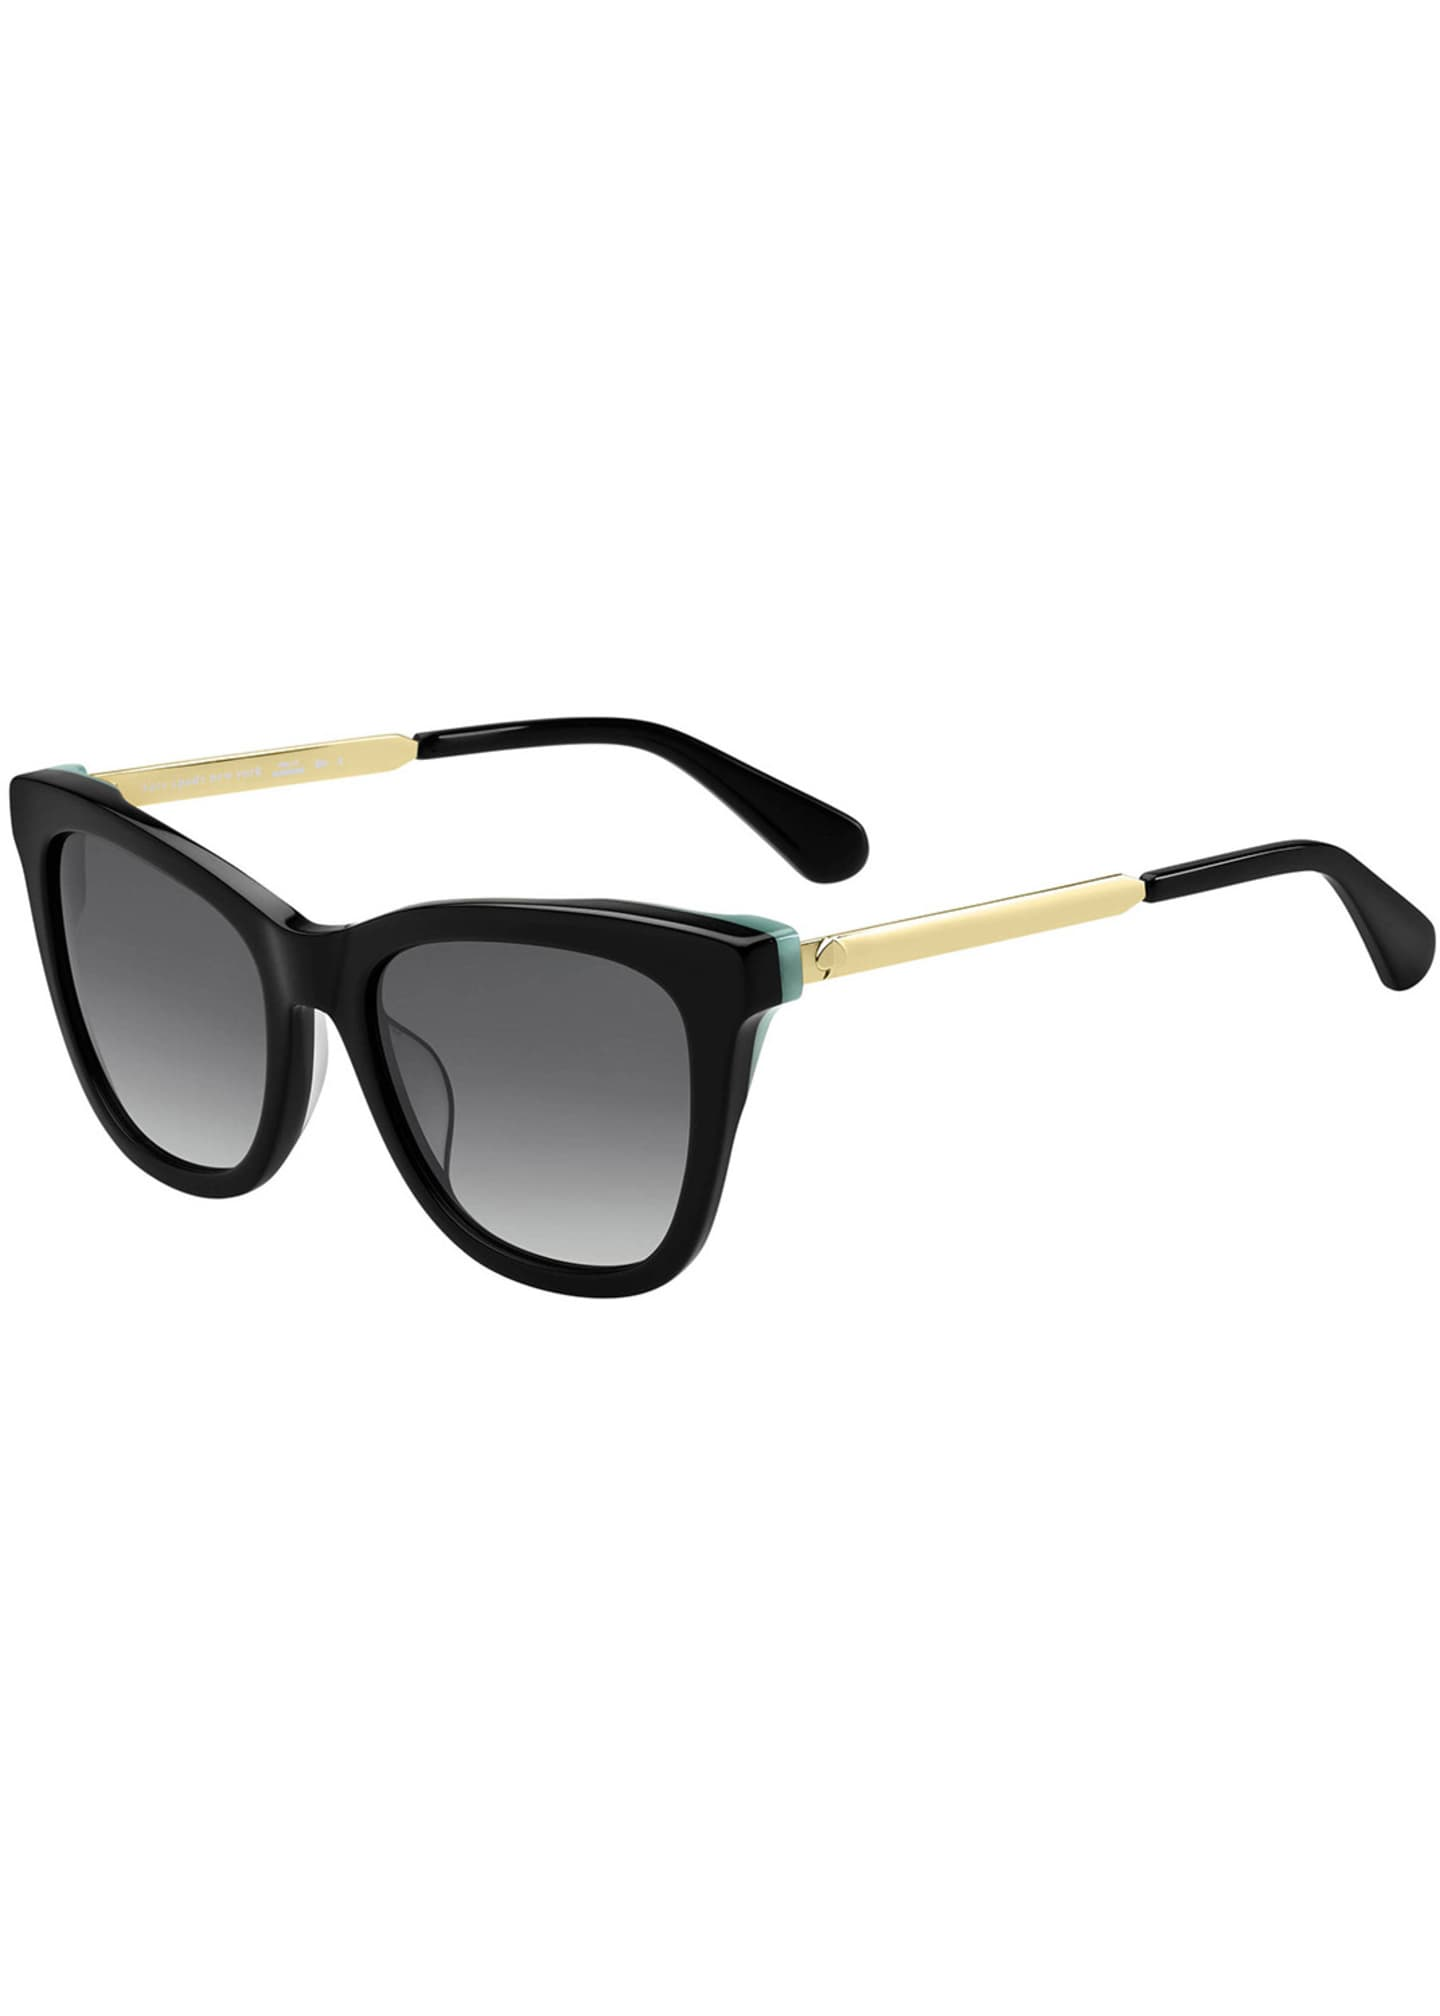 Image 1 of 1: alexane rectangle sunglasses